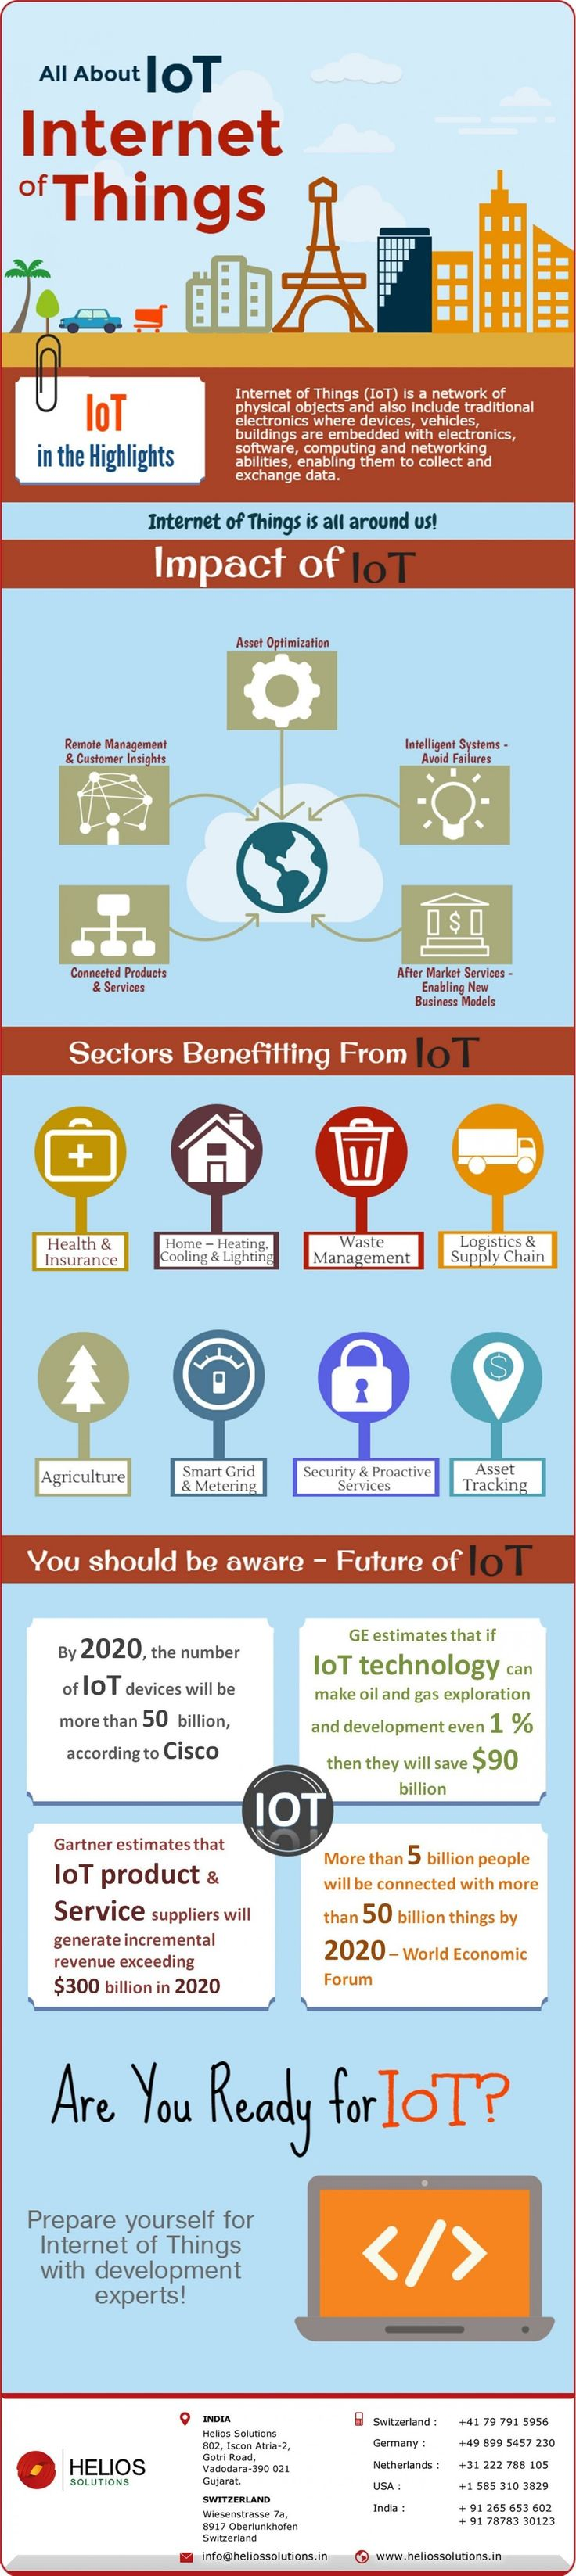 All About IoT – Internet Of Things http://blog.heliossolutions.in/infograph/iot-internet-things/ Wish to know all about IoT! Here is a amazing way to explain understand all about IoT – An infographic on Internet of Things from the development experts at Helios Solutions. #EcommerceDevelopmentSpecialist #OutsourcingWordpressIndia #wordpressspecialist